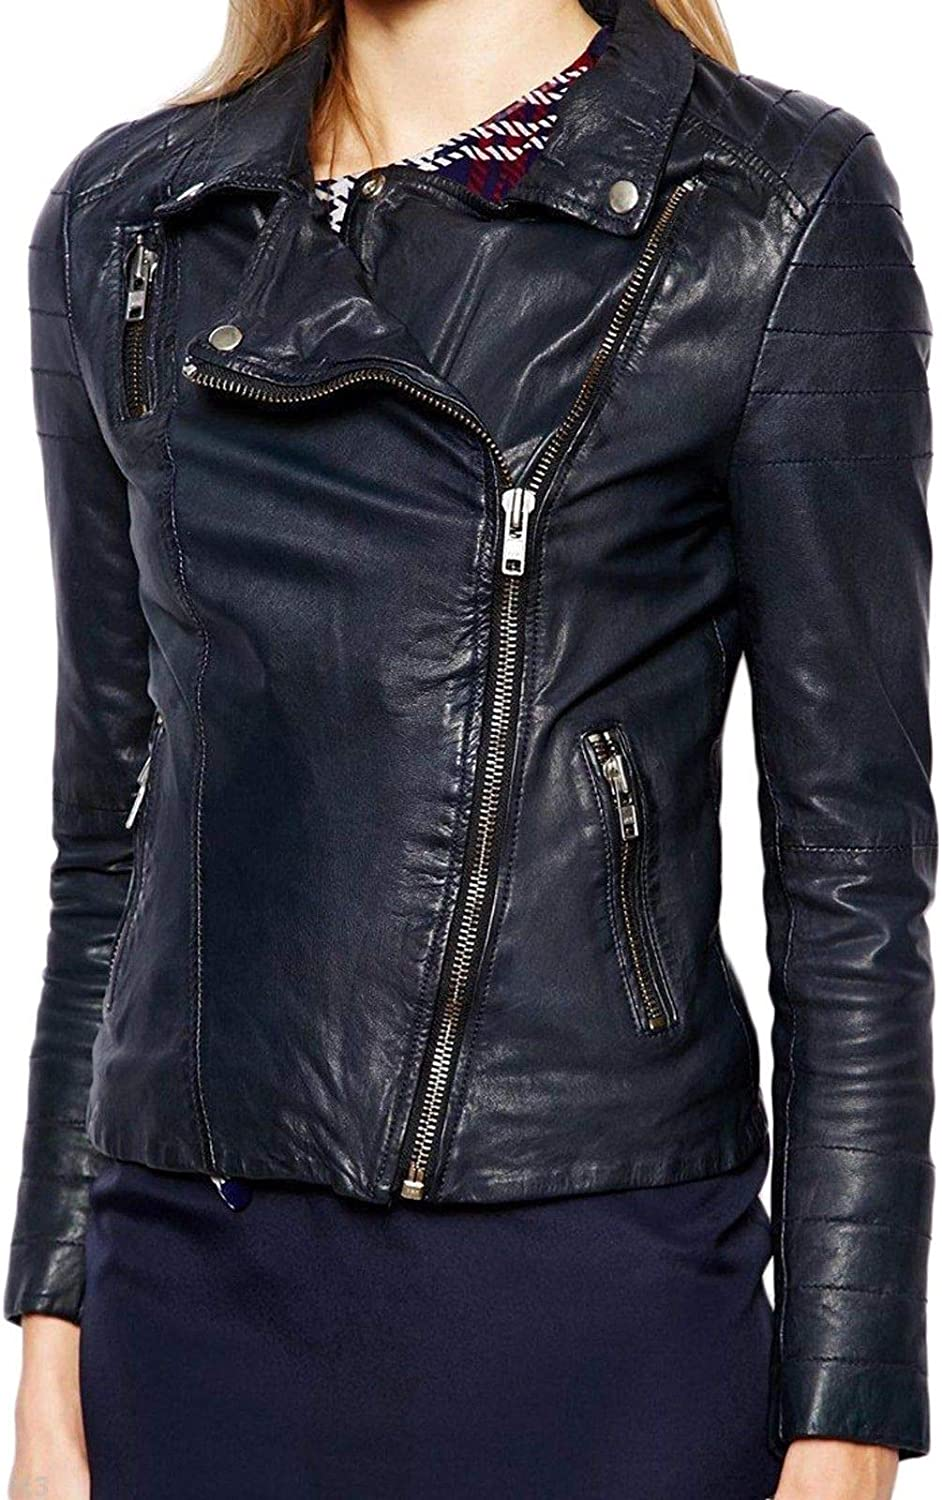 Pristine Leather Womens Lambskin Leather Motorcycle Rider Biker Racer Black Jacket WJ-176